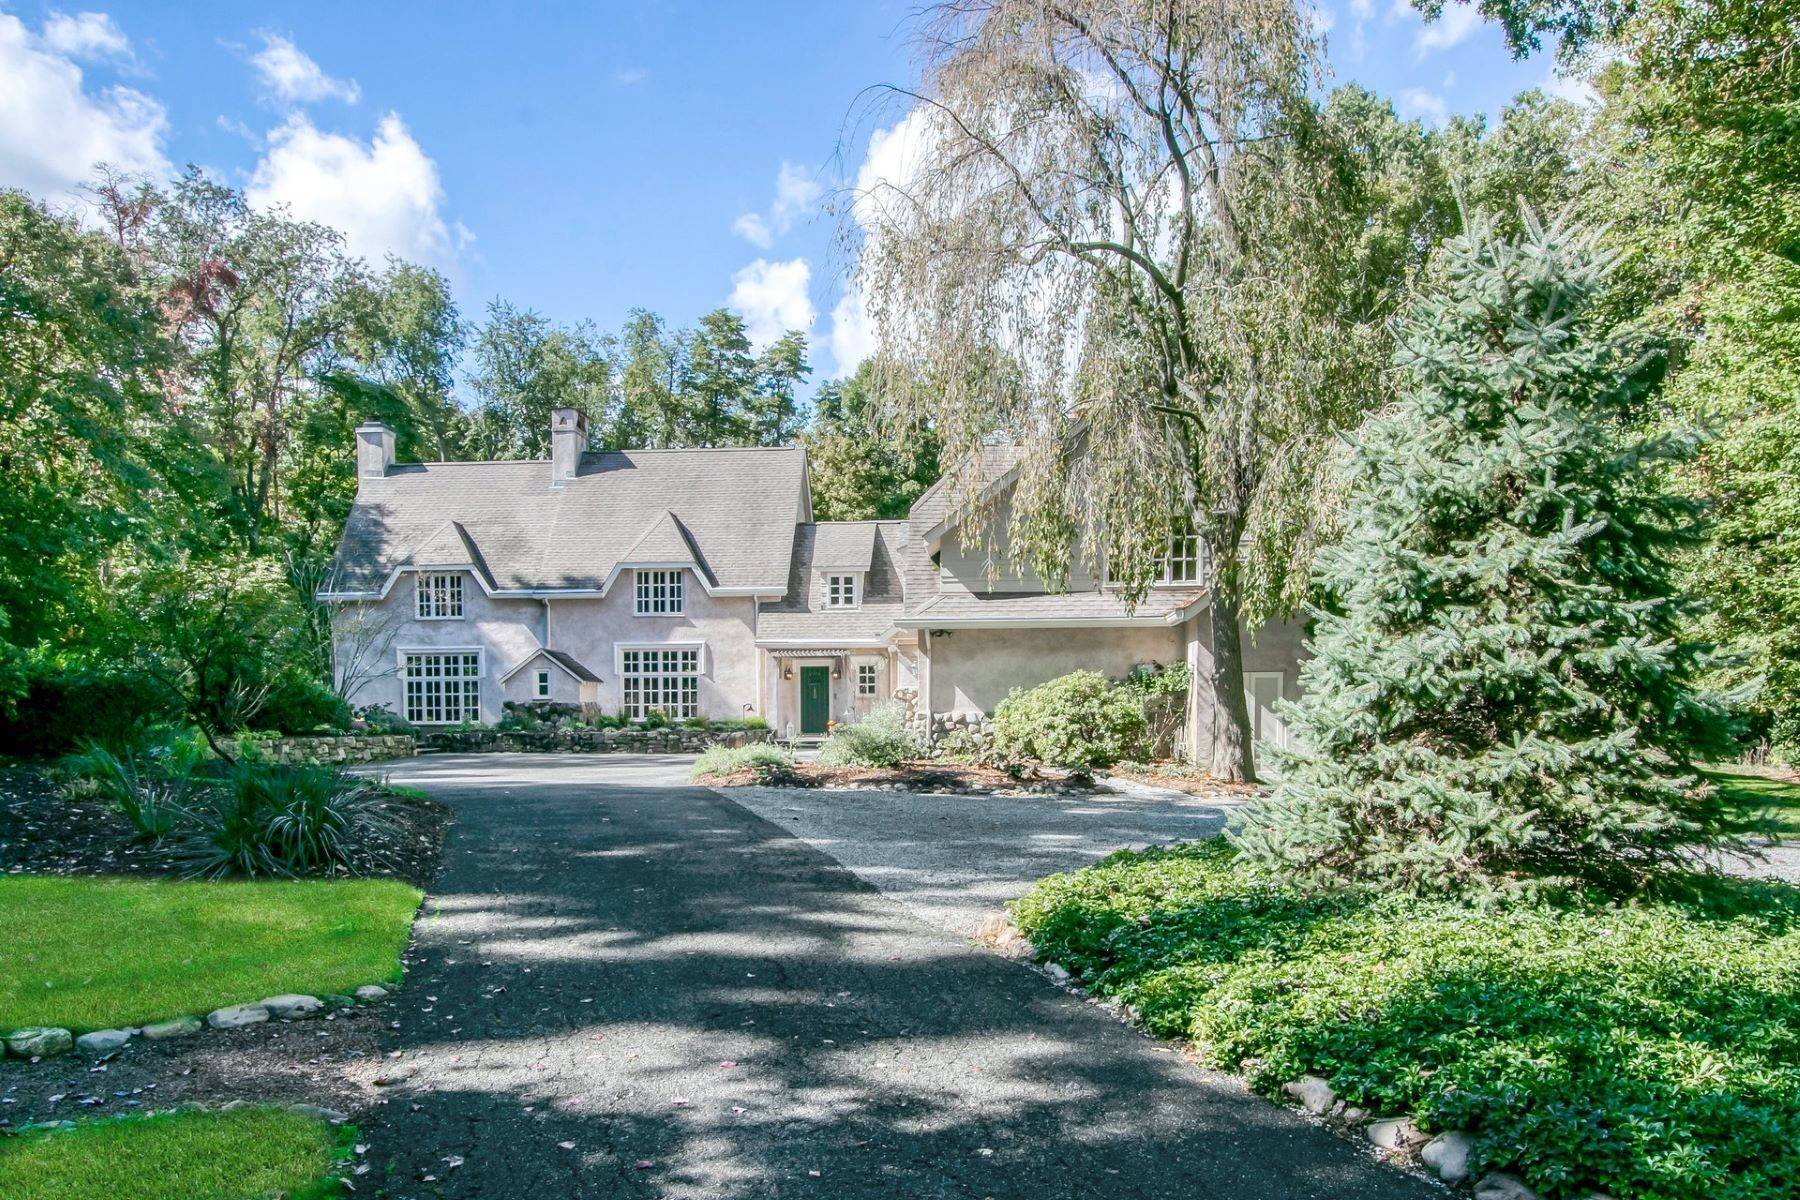 Single Family Homes for Sale at METICULOUSLY MAINTAINED 26 Ash Road Upper Saddle River, New Jersey 07458 United States